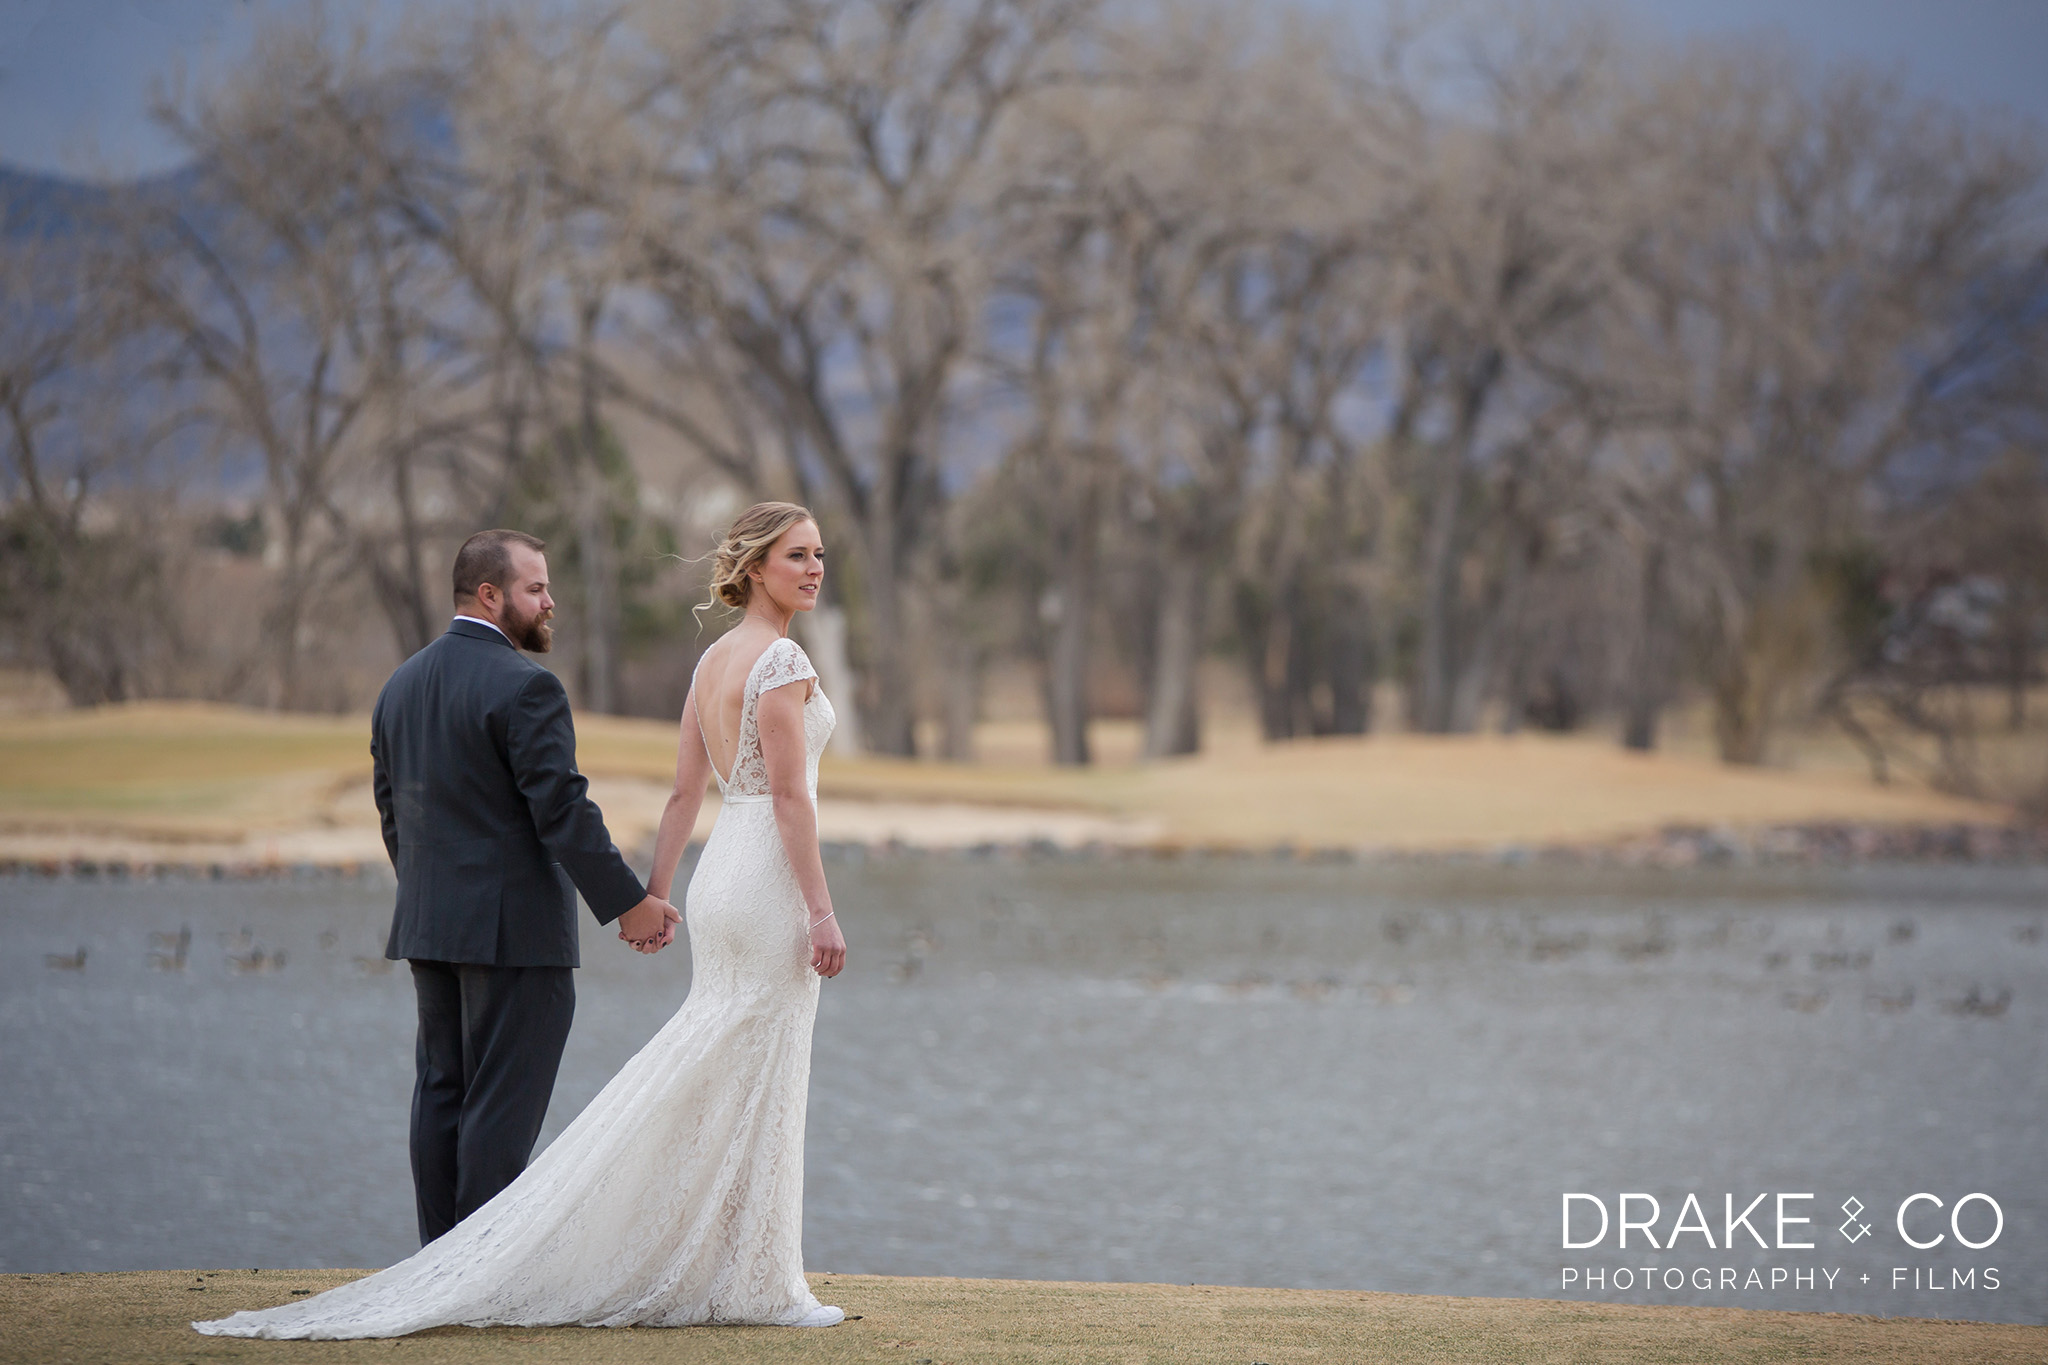 Jennifer Mike S Colorado Wedding The Barn At Raccoon Creek Wedding Photographer Drake Co Photo Films